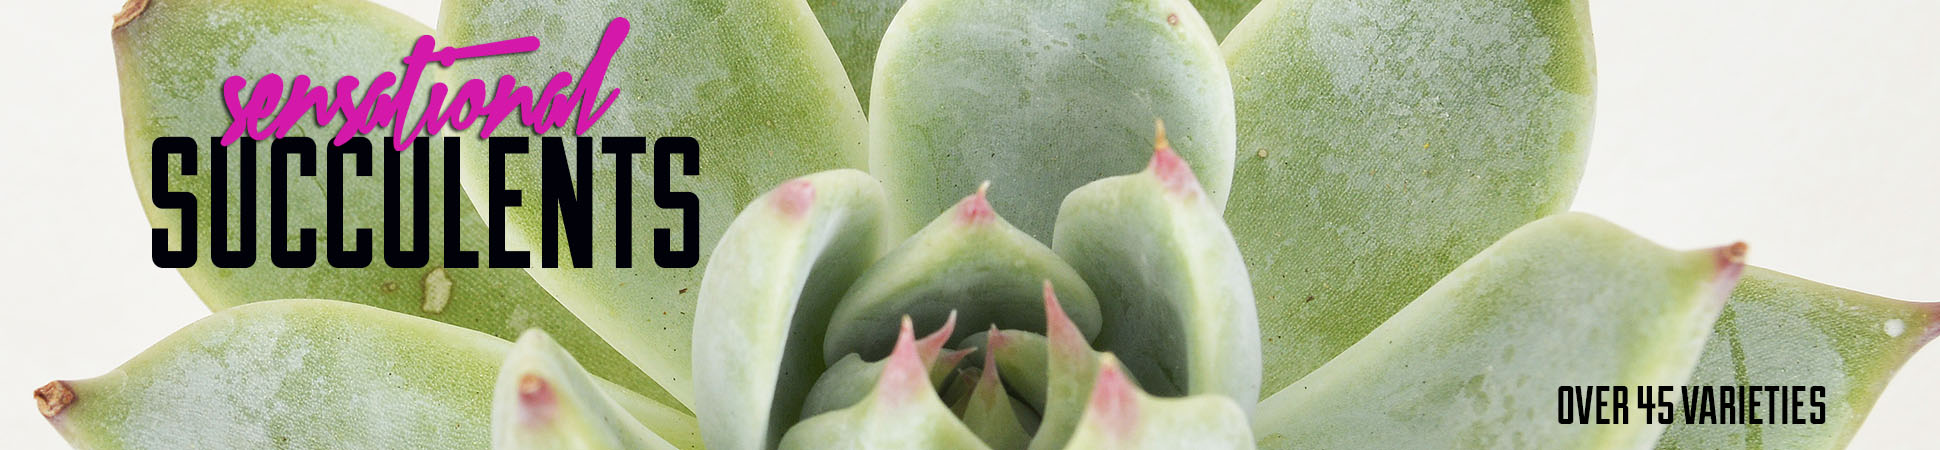 sensational-succulents.jpg